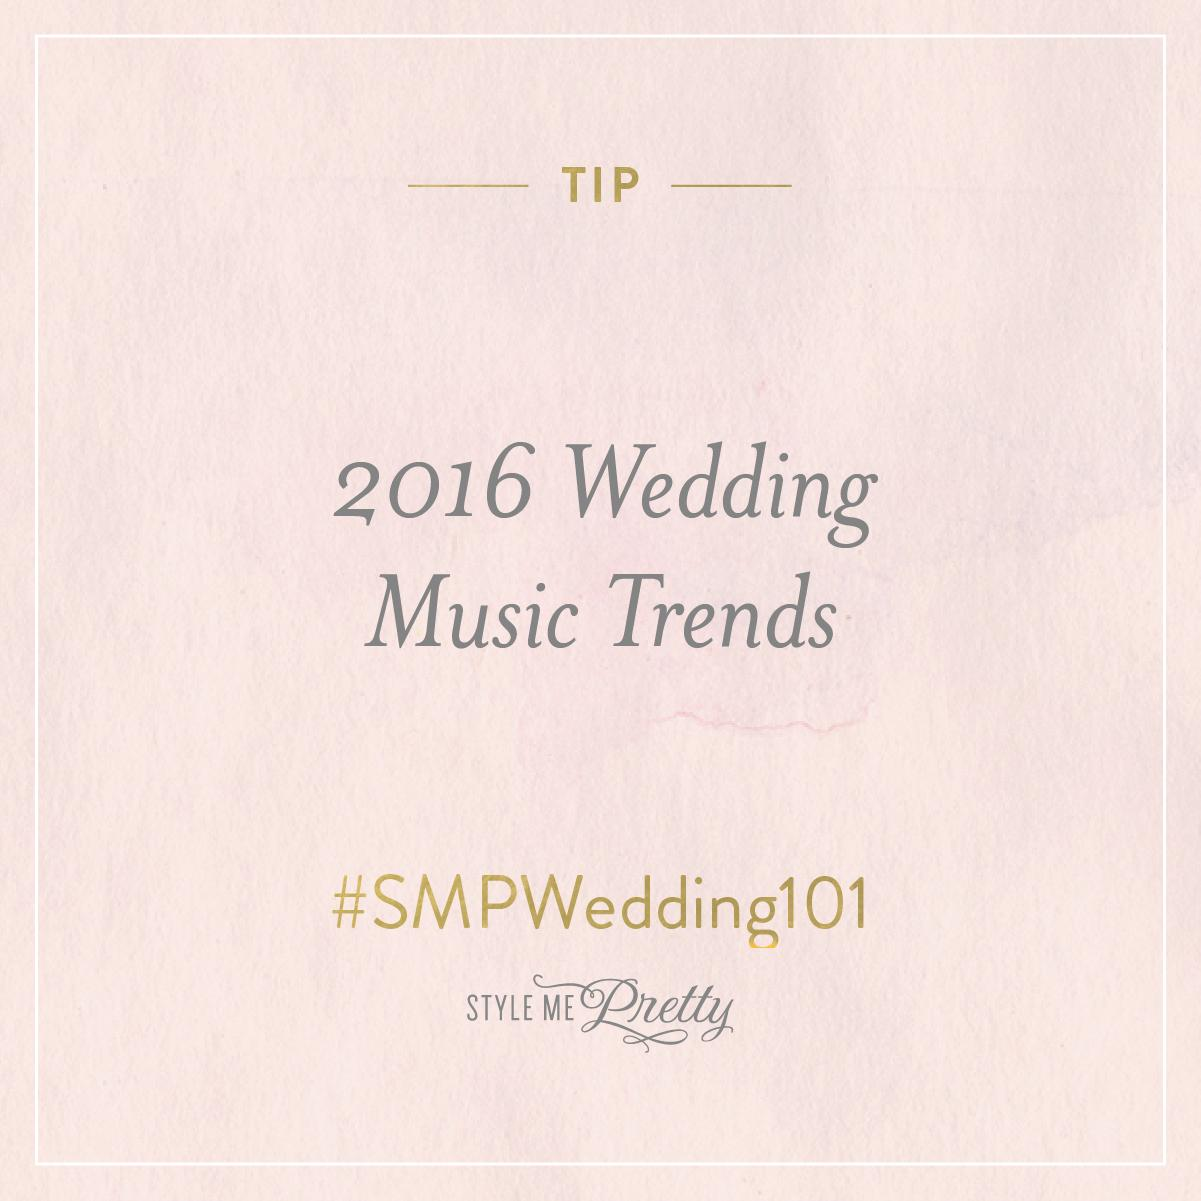 #SMPWedding101 - 2016 Wedding Music Trends